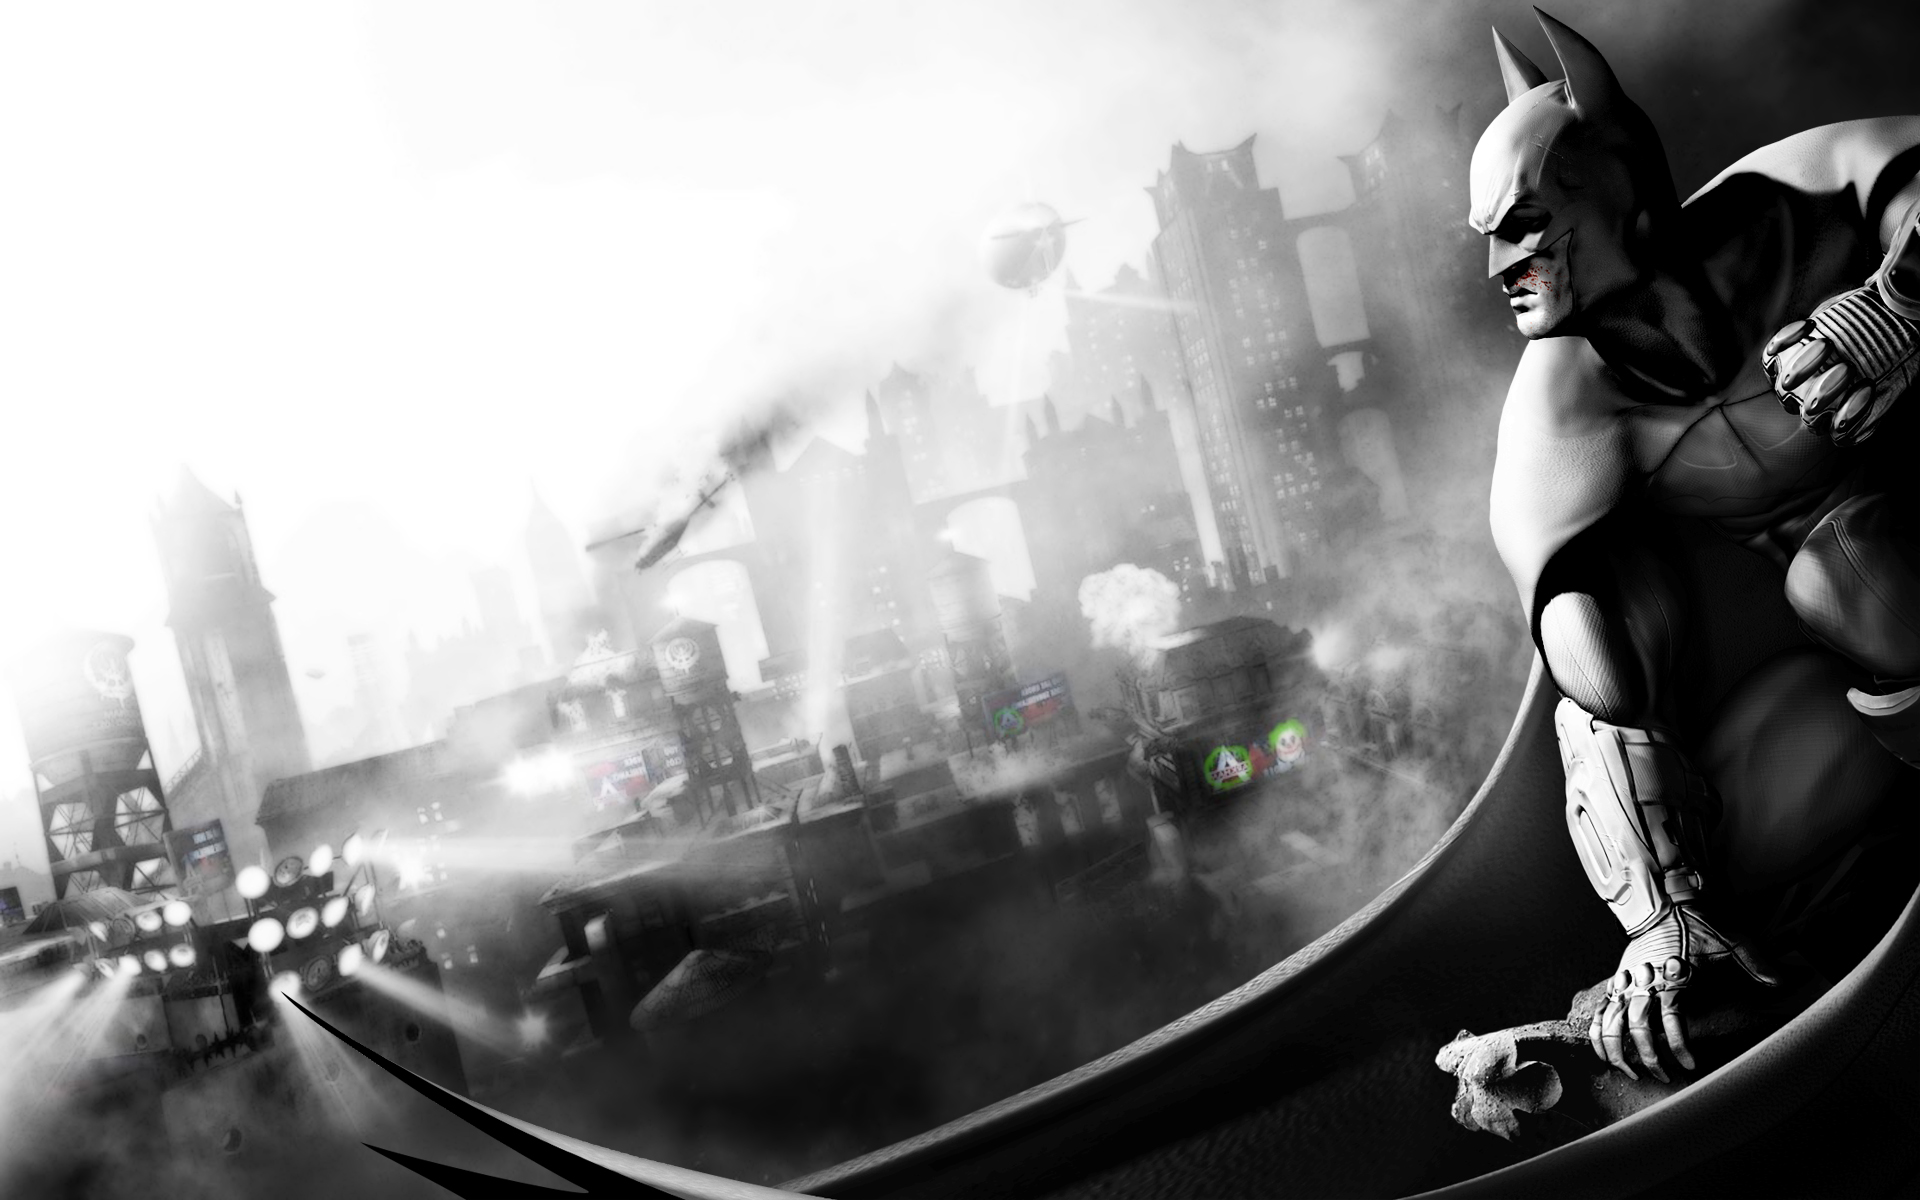 batman arkham city 1920x1200 wallpaper click for full size plan is 1920x1200